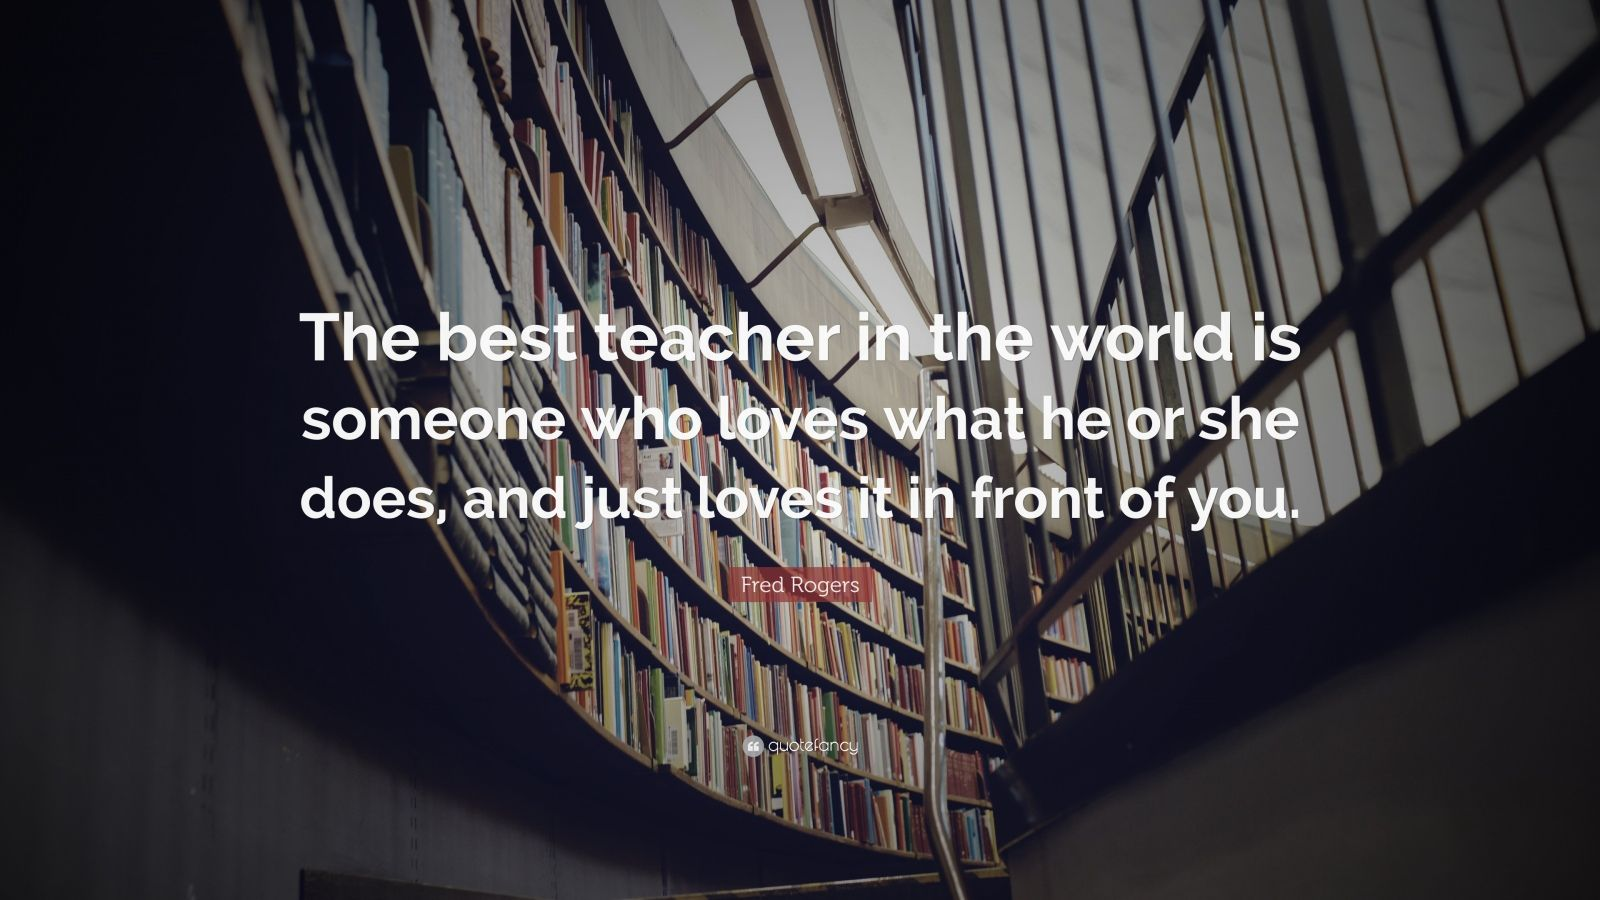 Fred Rogers Quote The Best Teacher In The World Is Someone Who Loves What He Or She Does And Just Loves It In Front Of You 7 Wallpapers Quotefancy